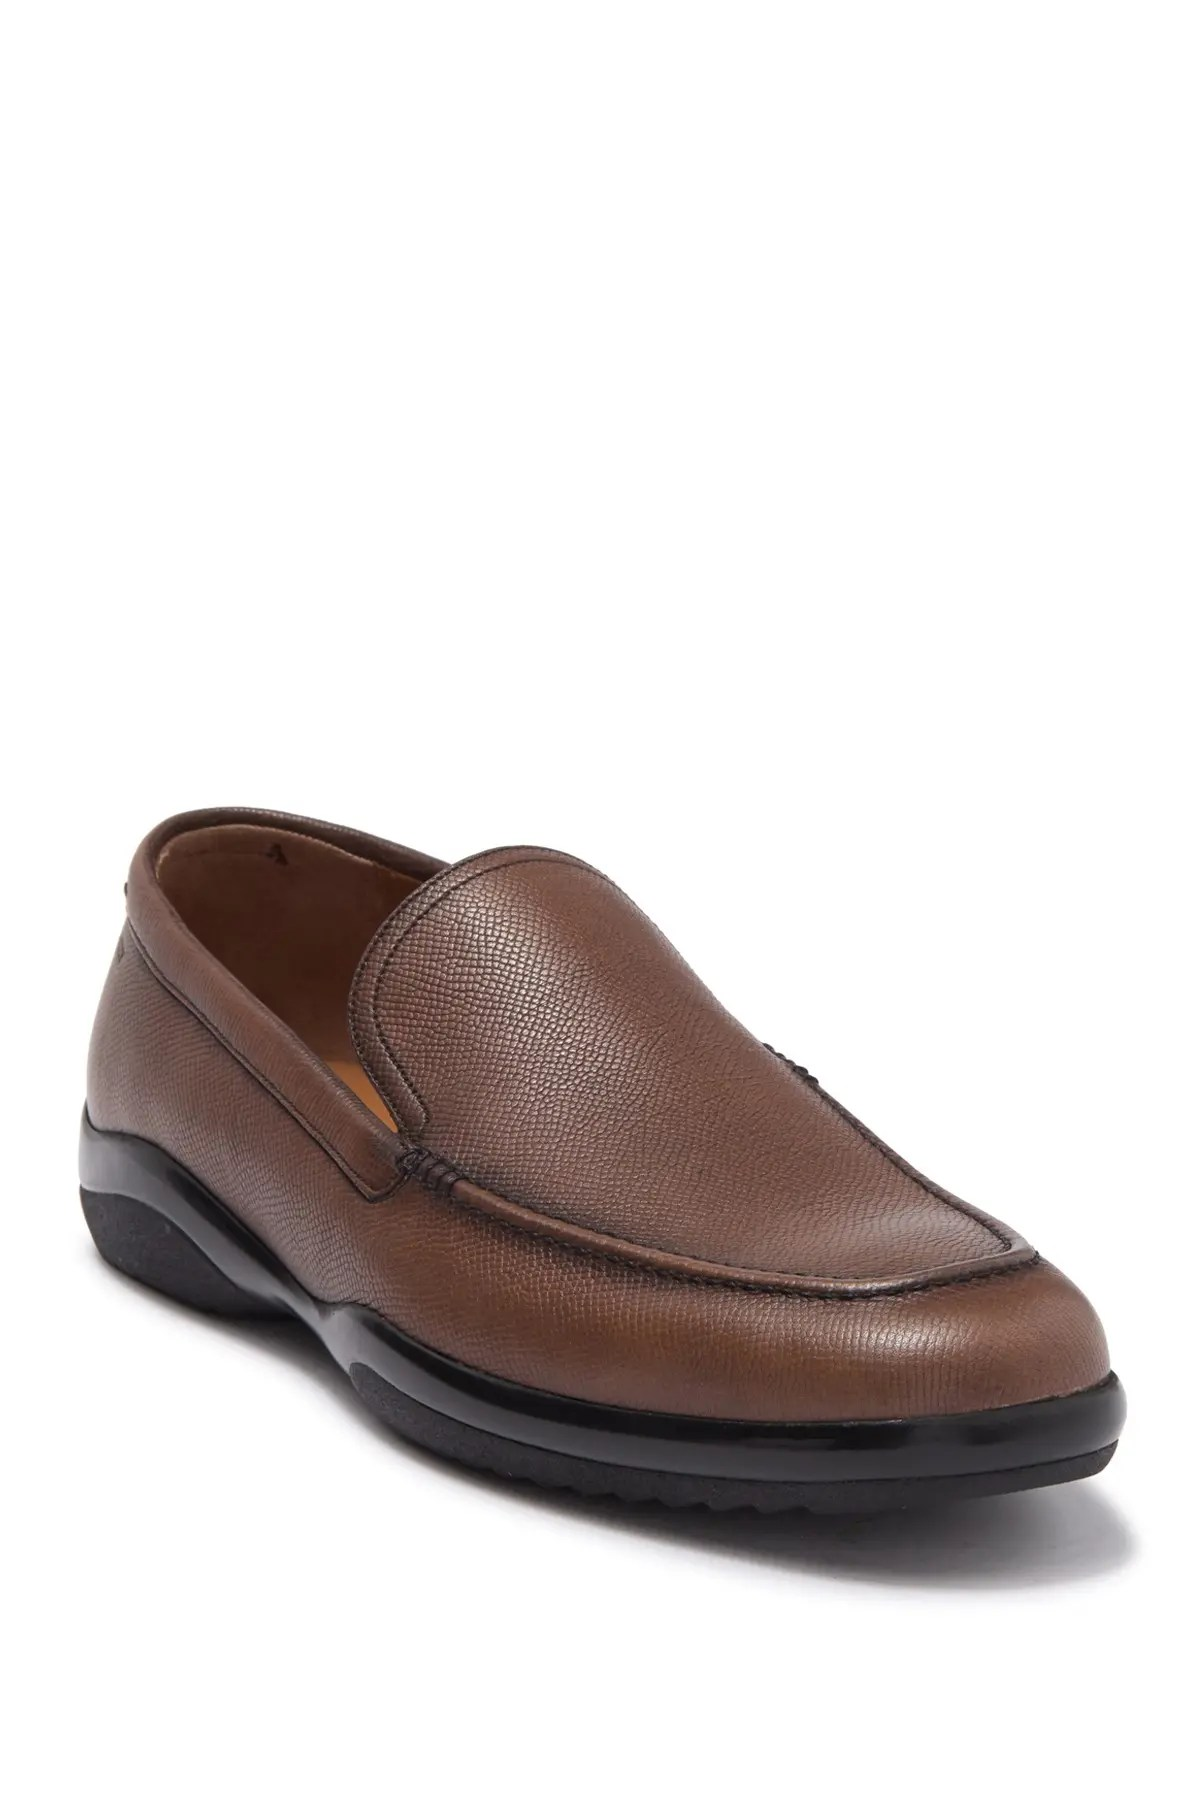 men s loafers slip ons clearance